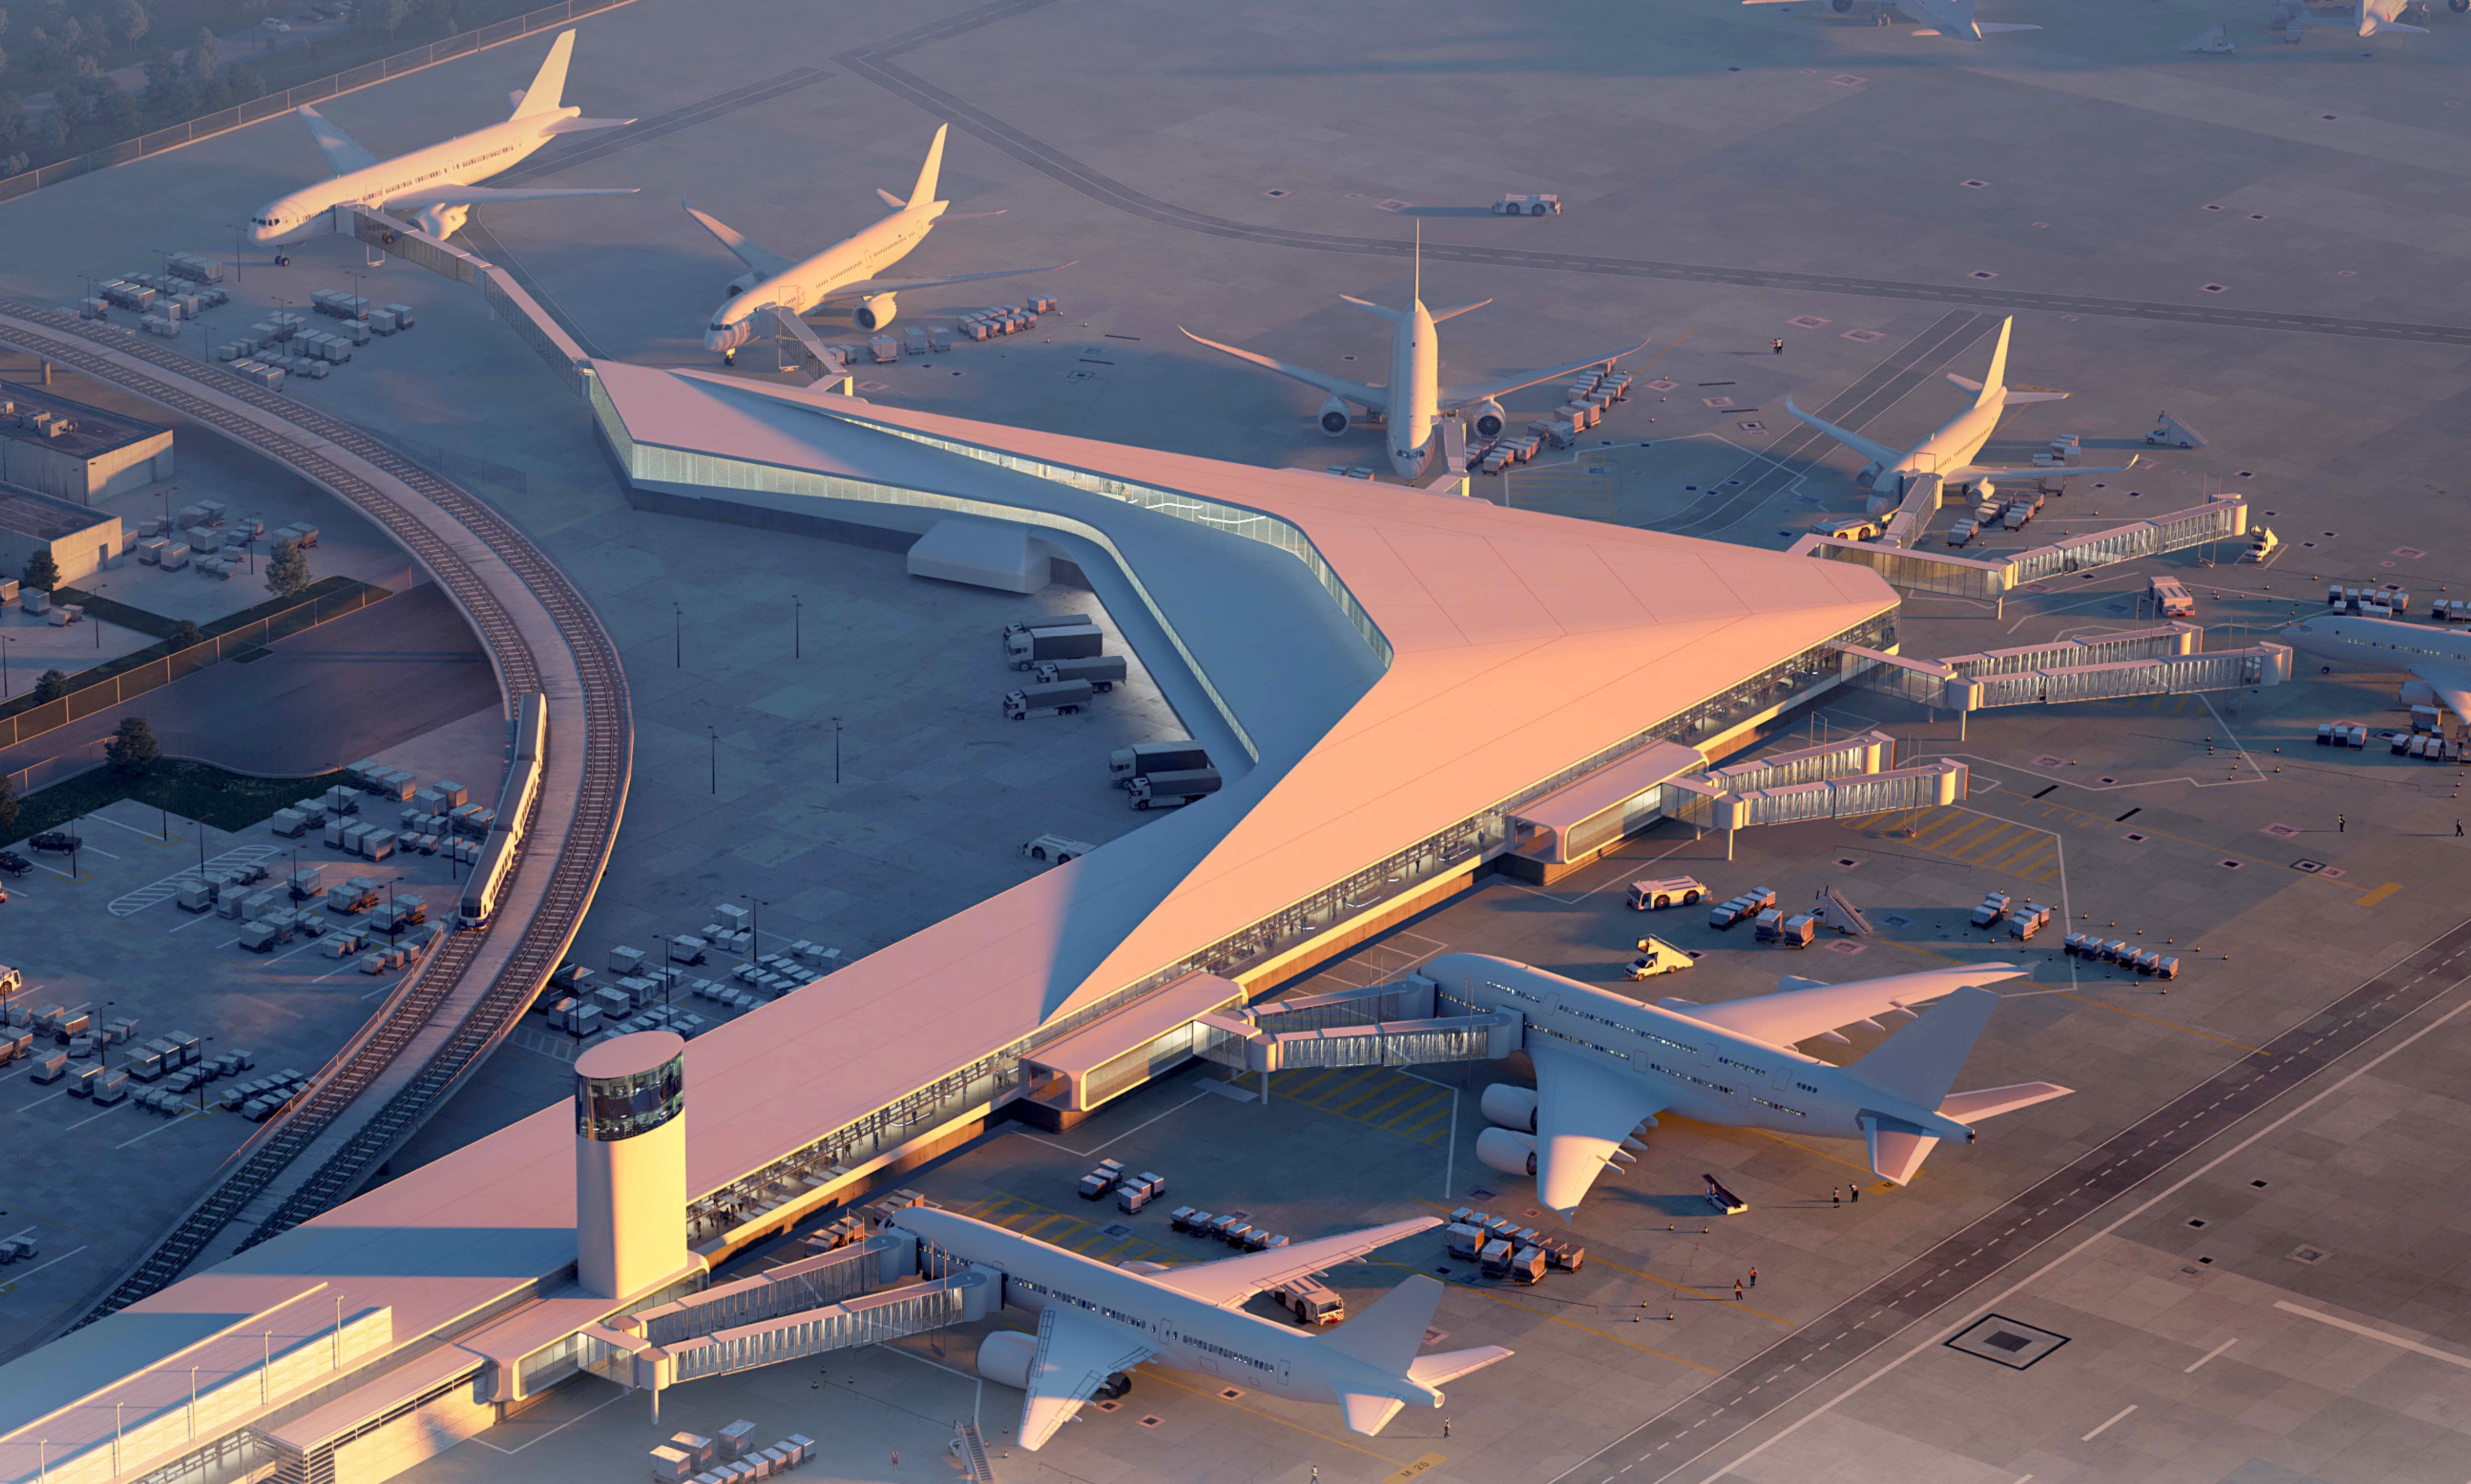 O'Hare breaks ground on $1.2B Terminal 5 expansion project